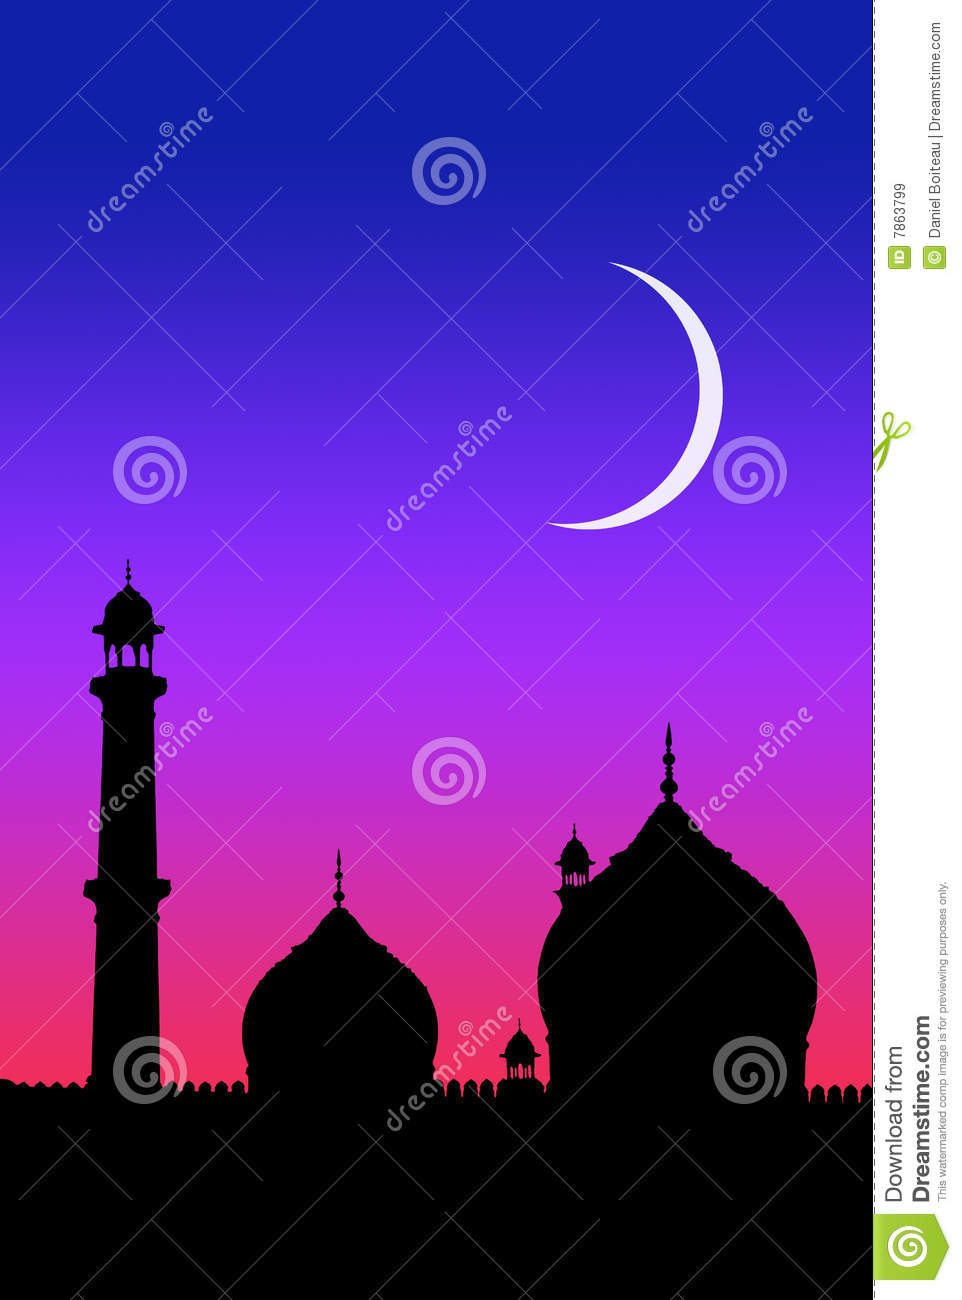 red moon dream meaning islam - photo #14